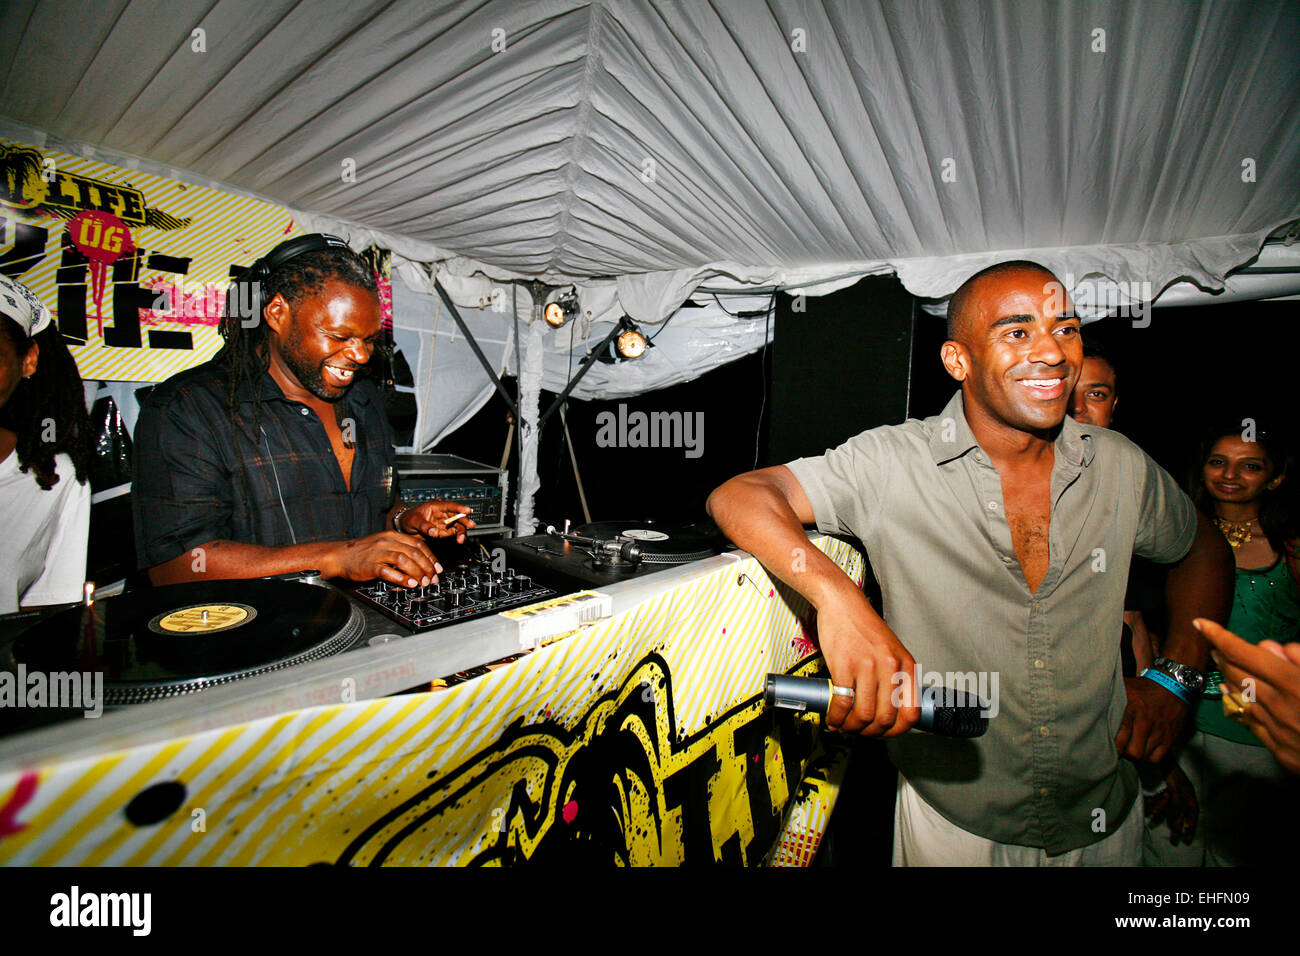 Nigel promoter of Back II Life Antigua with Jazzie B on the decks. - Stock Image